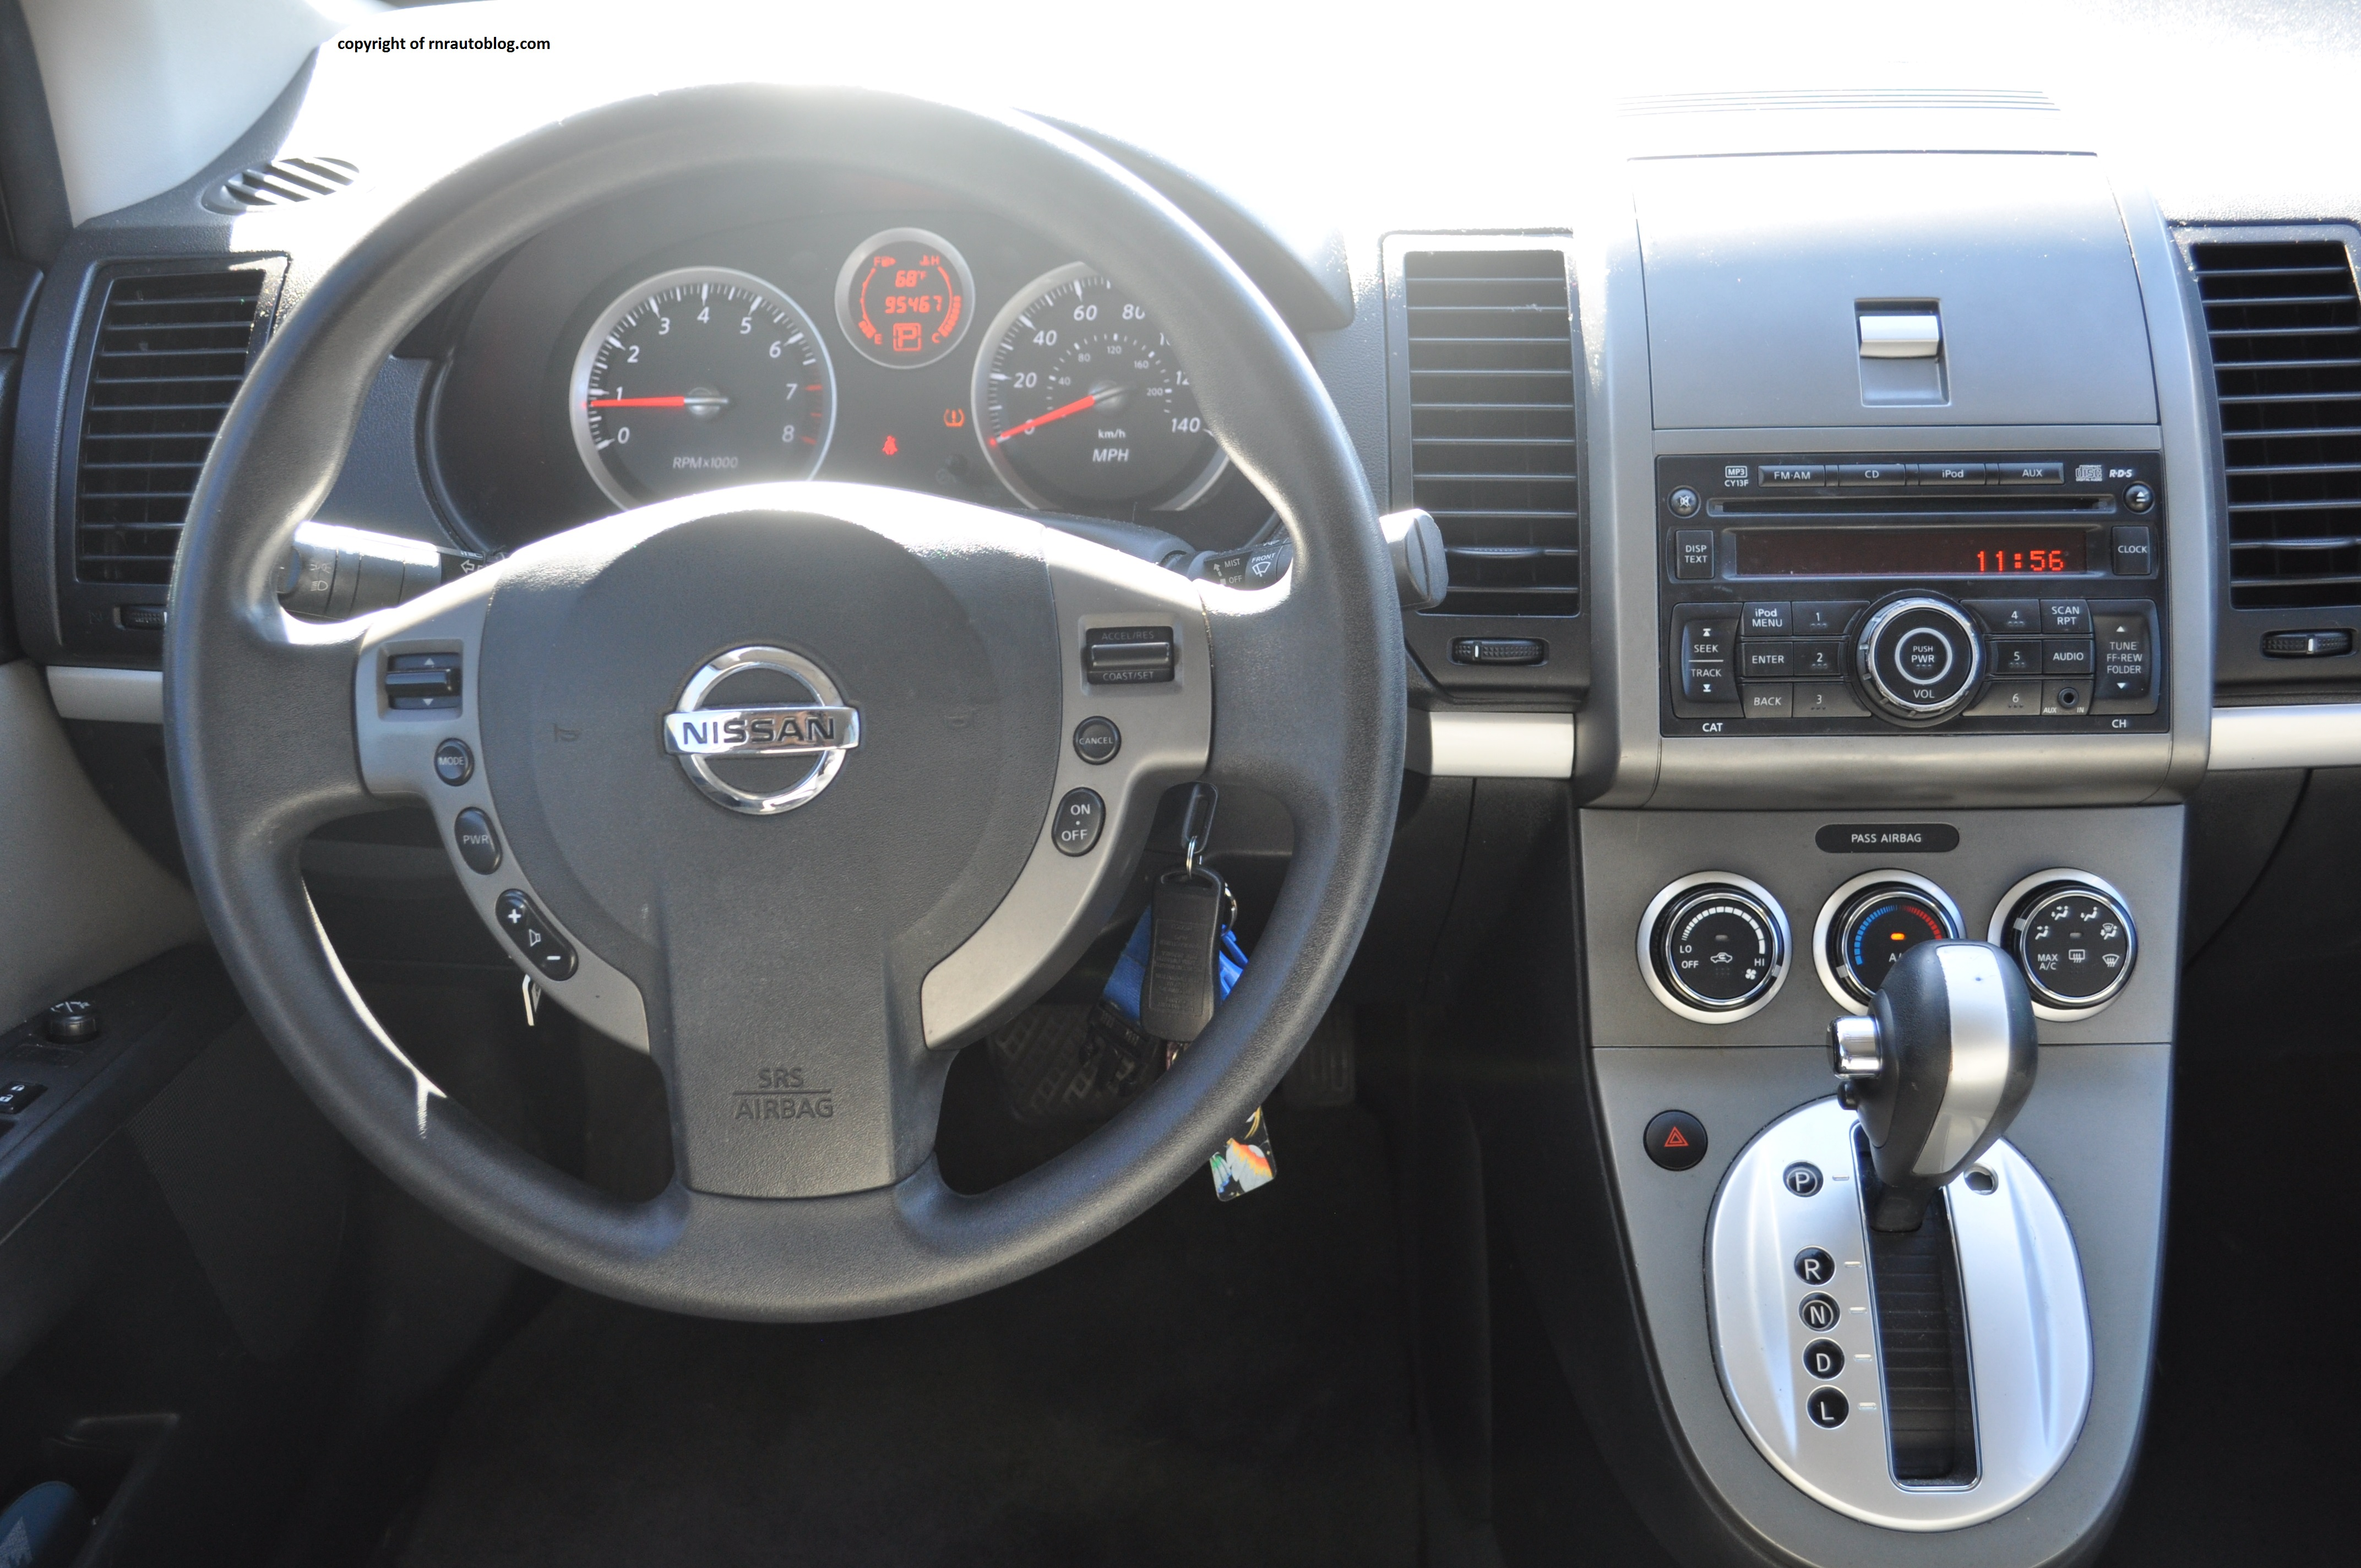 2010 Nissan Sentra 2 0s Review Rnr Automotive Blog